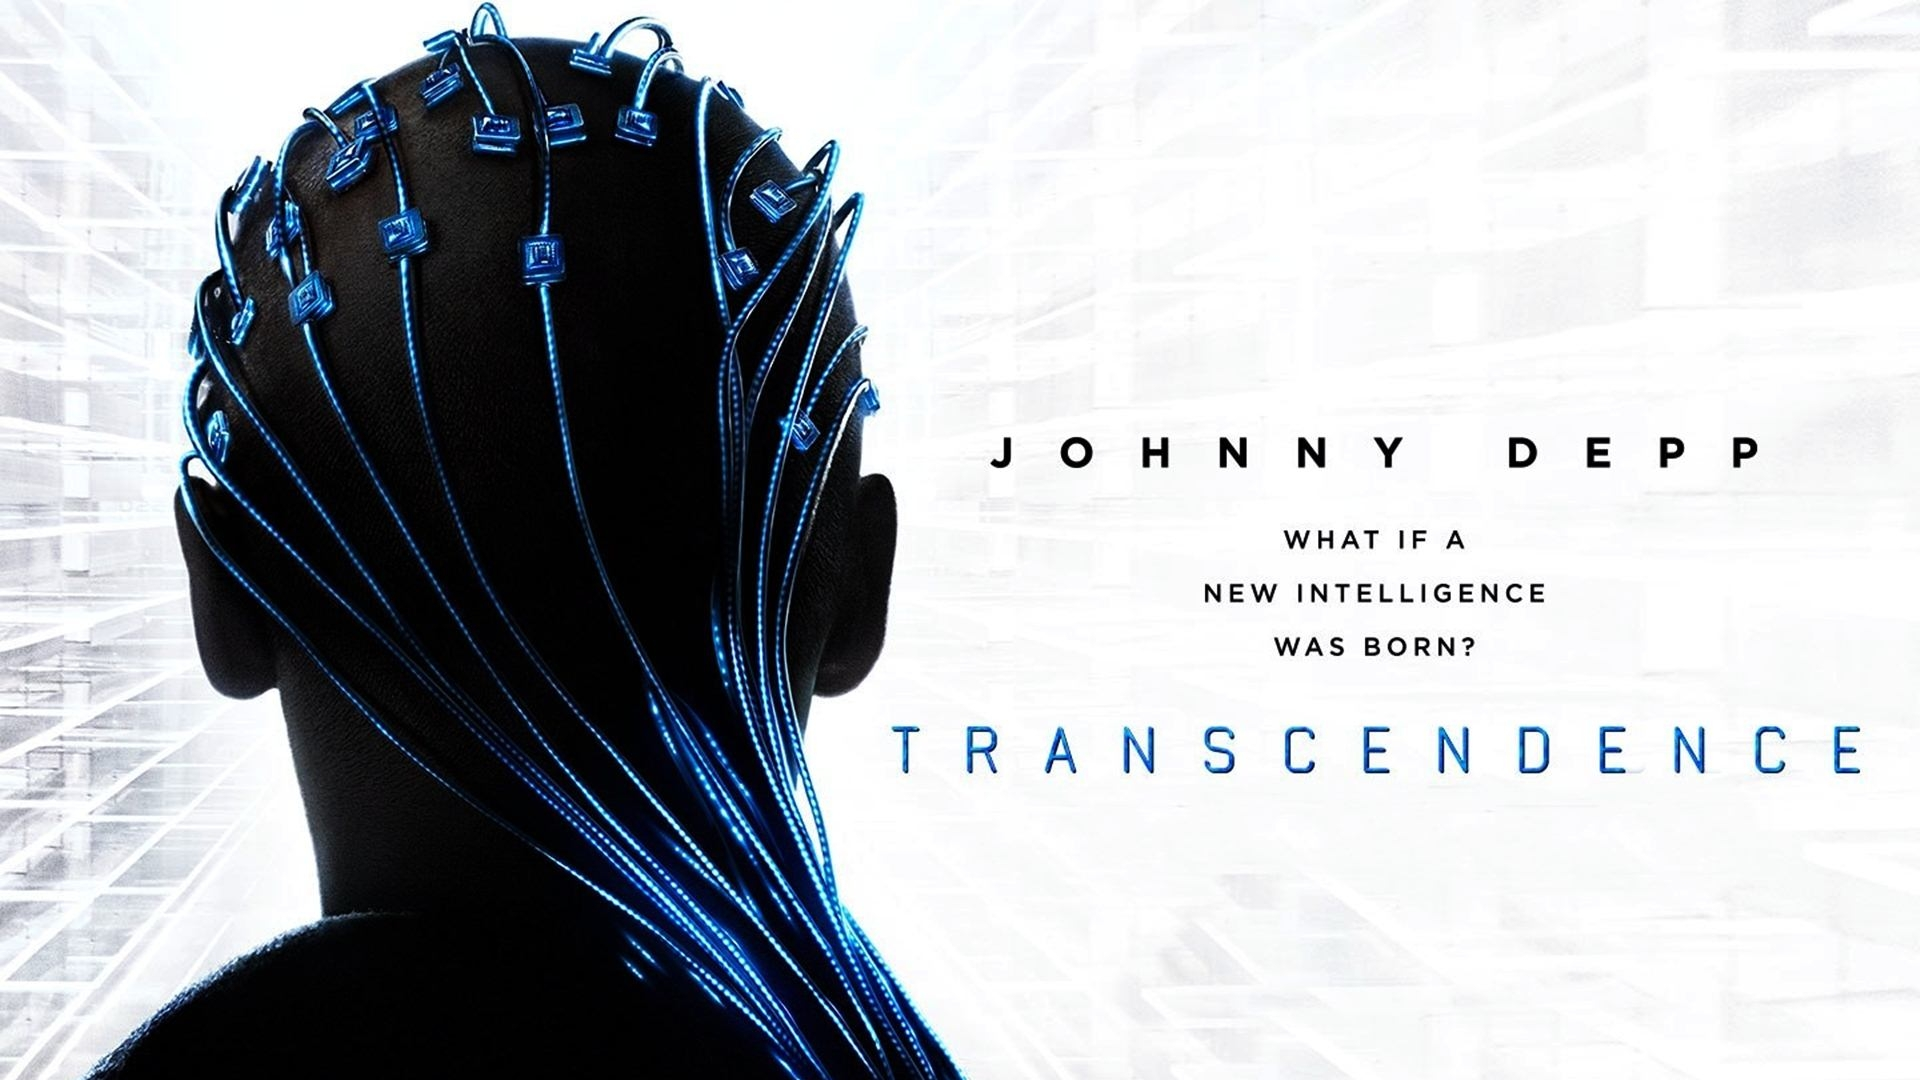 Transcendence HD Wallpaper | Background Image | 1920x1080 | ID:525592 - Wallpaper Abyss